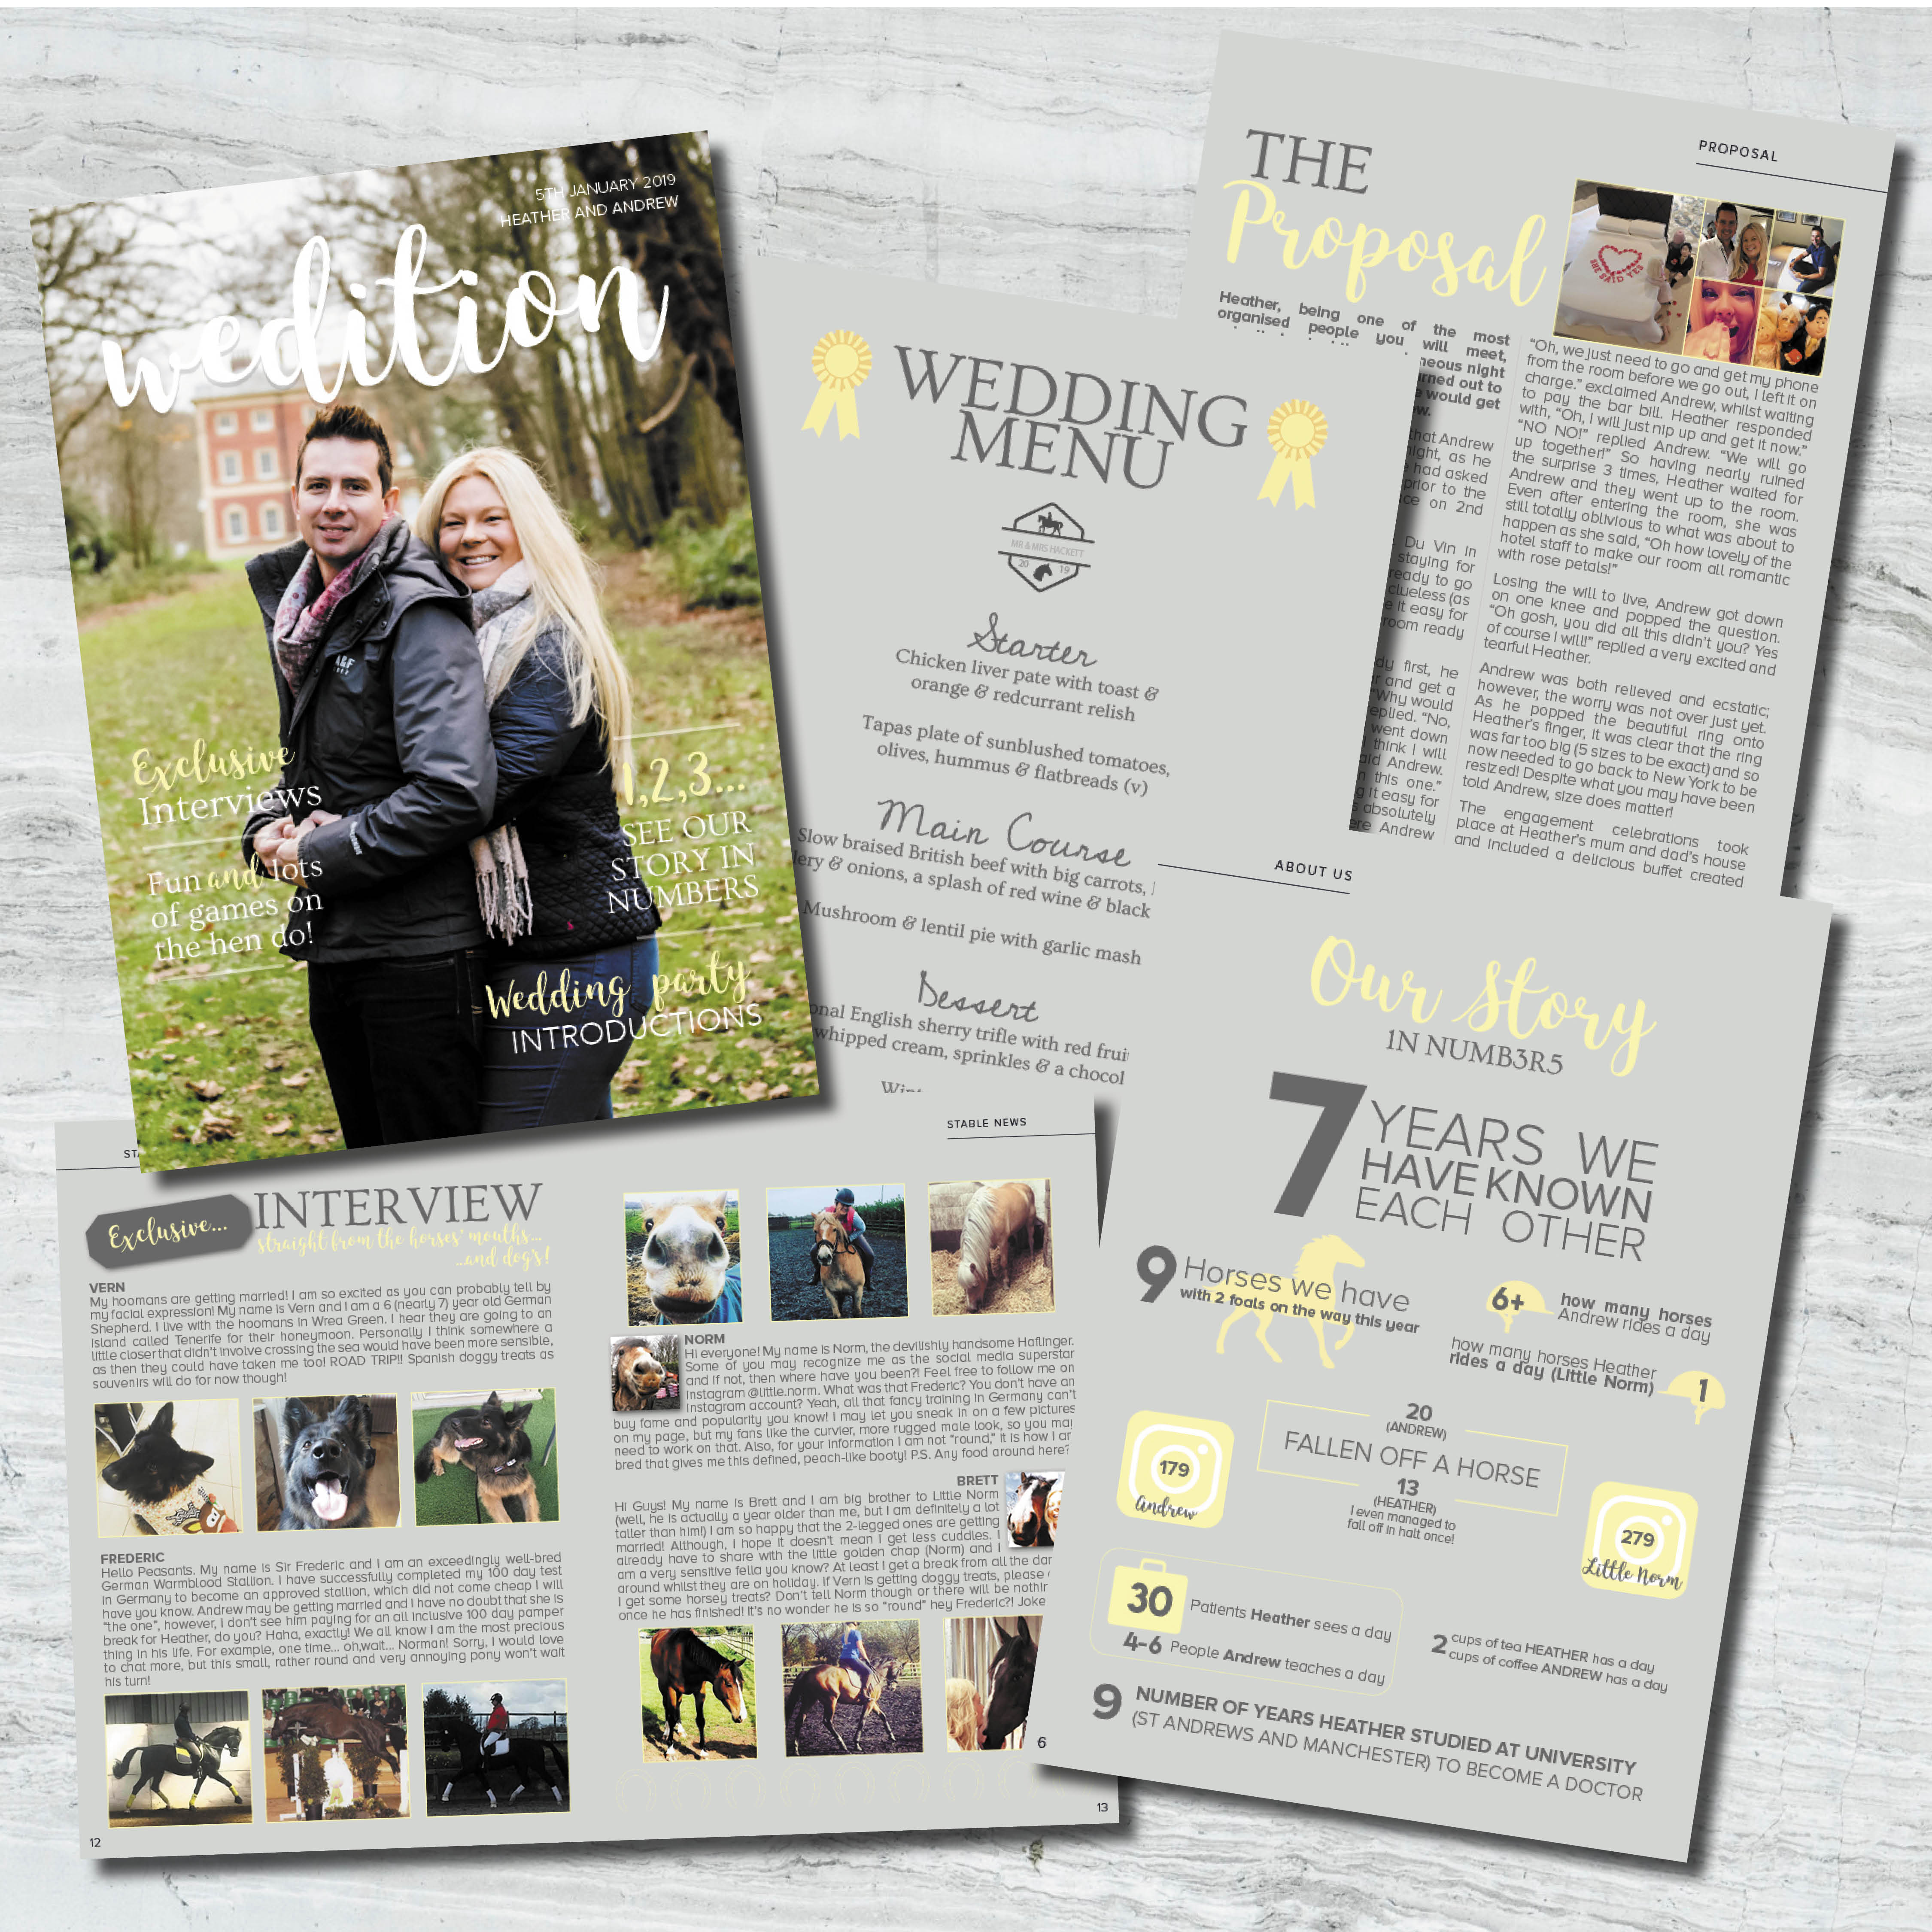 animal wedding stationery, Making your pet a memorable part of your wedding day, horses and dogs at weddings